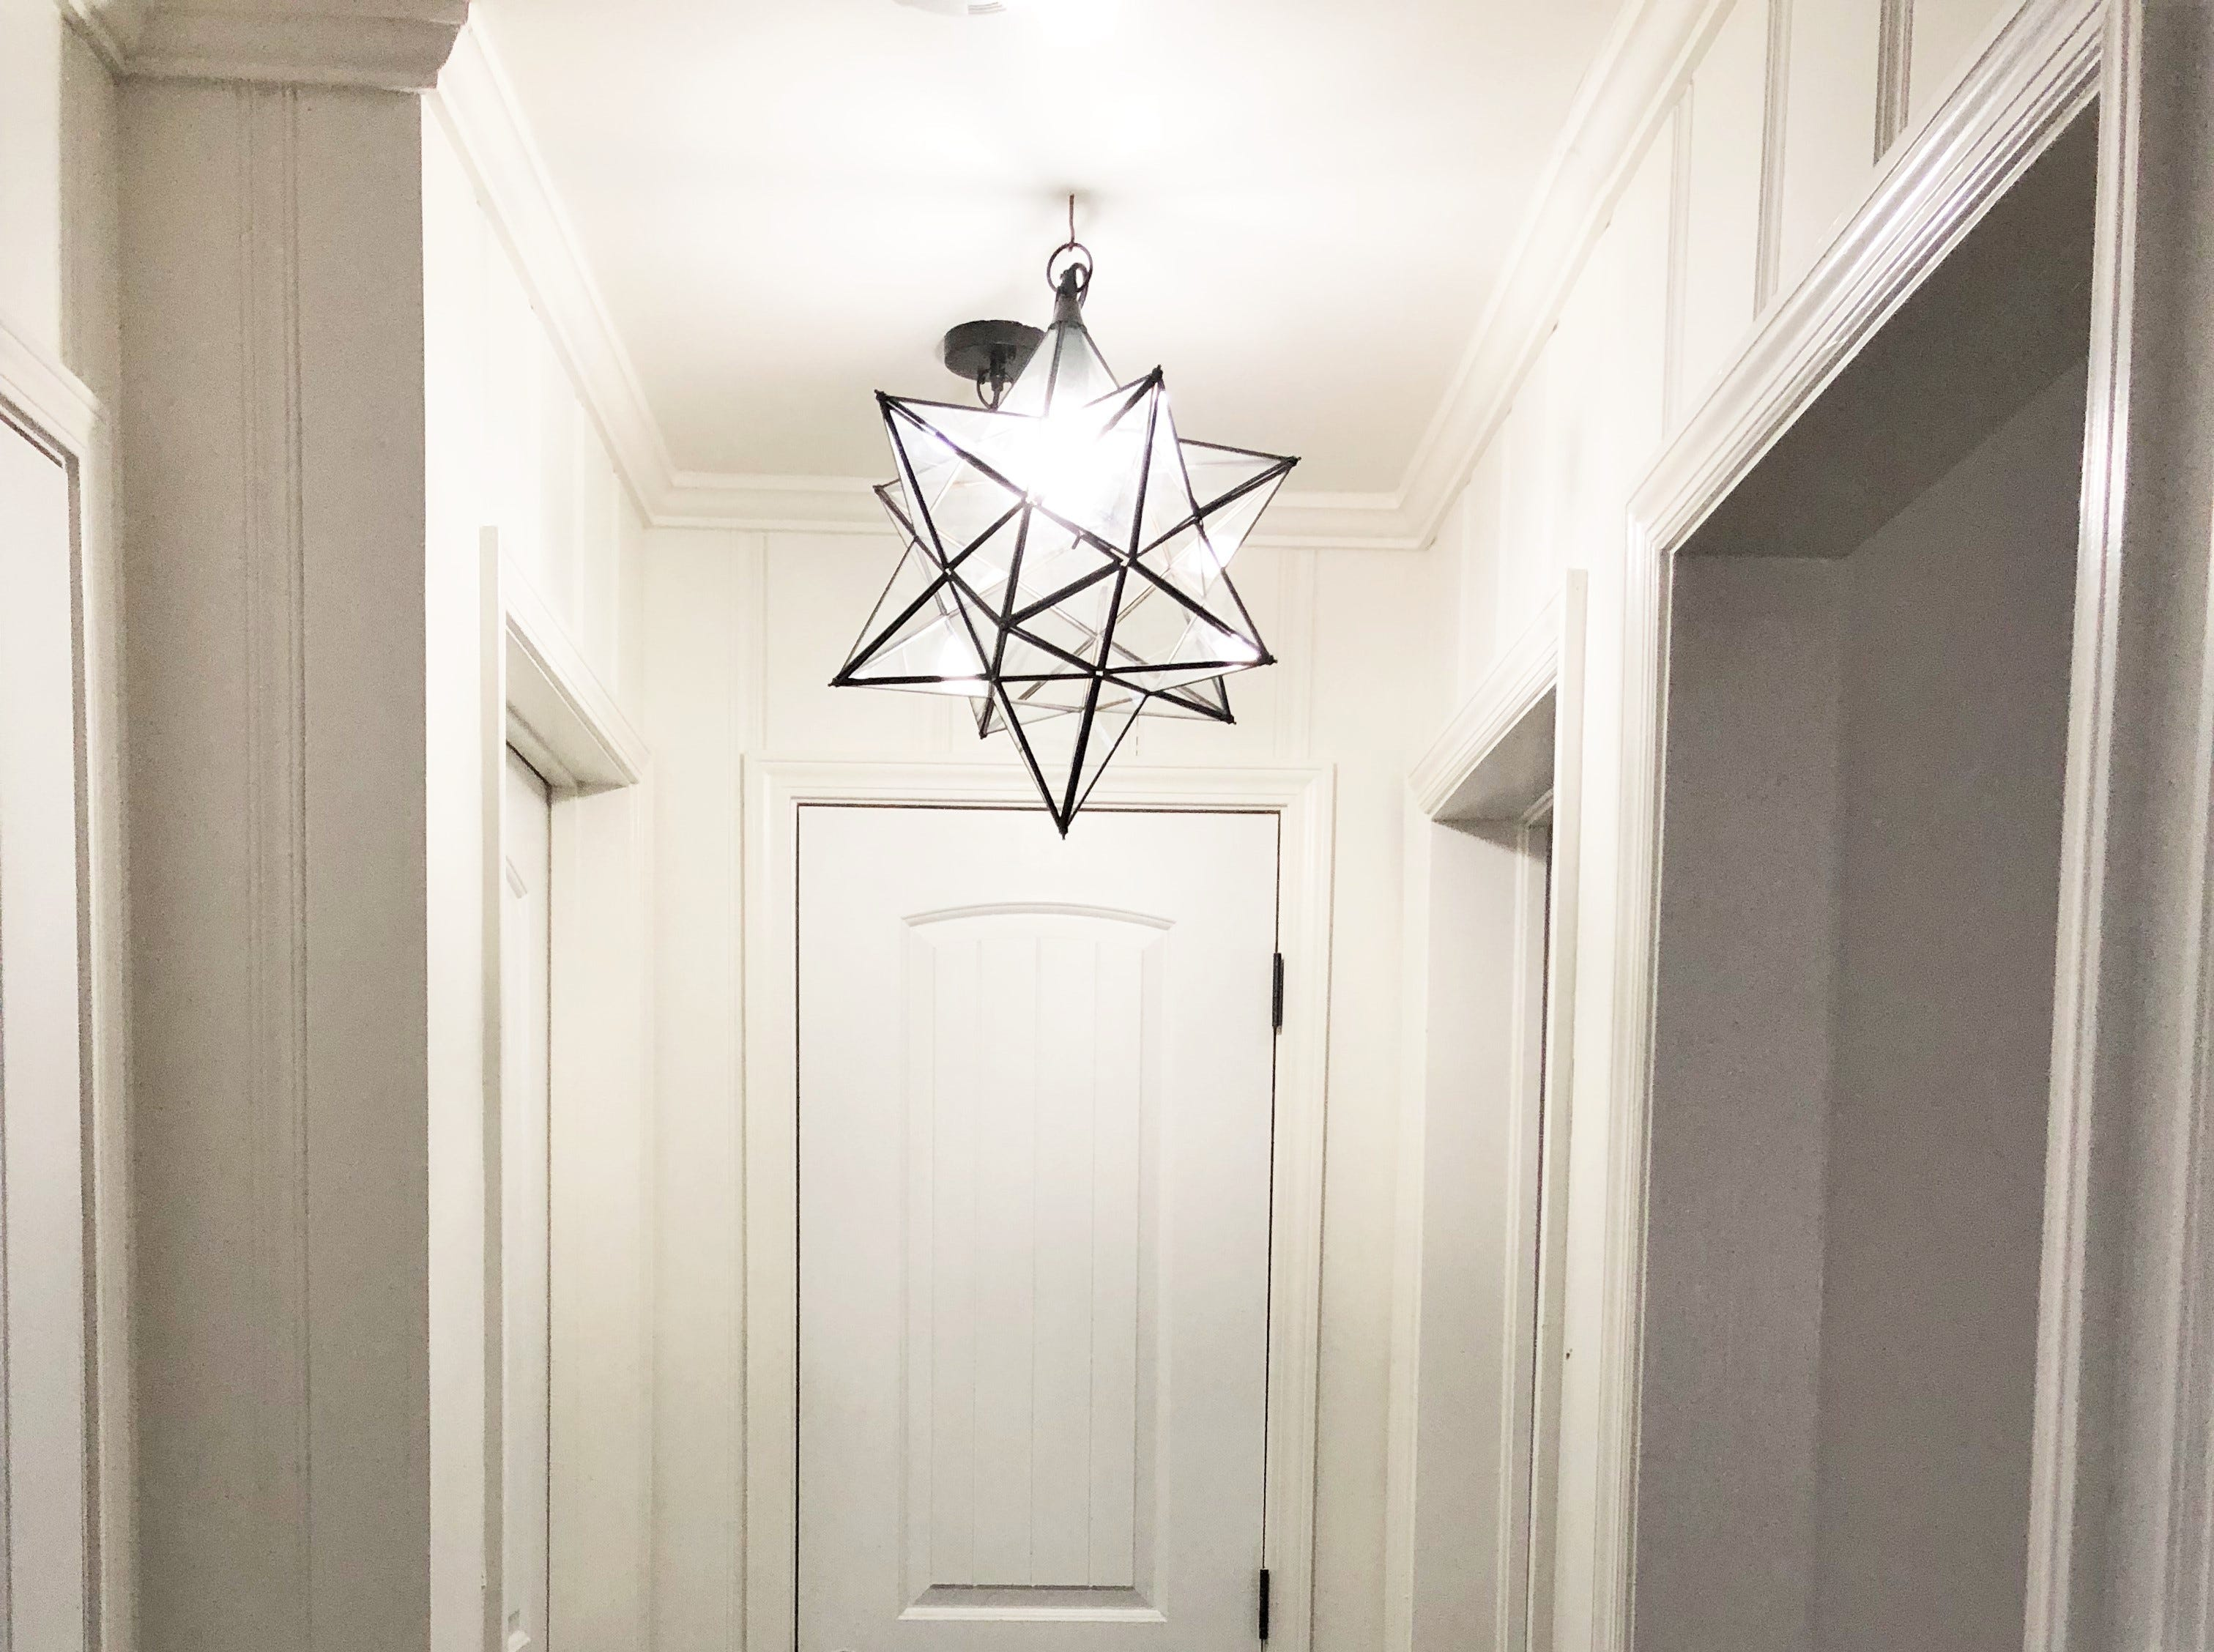 Update handles, cabinet hardware and lighting fixtures, but keep it consistent throughout the house, suggests real estate agent Katie Beeler Henson.